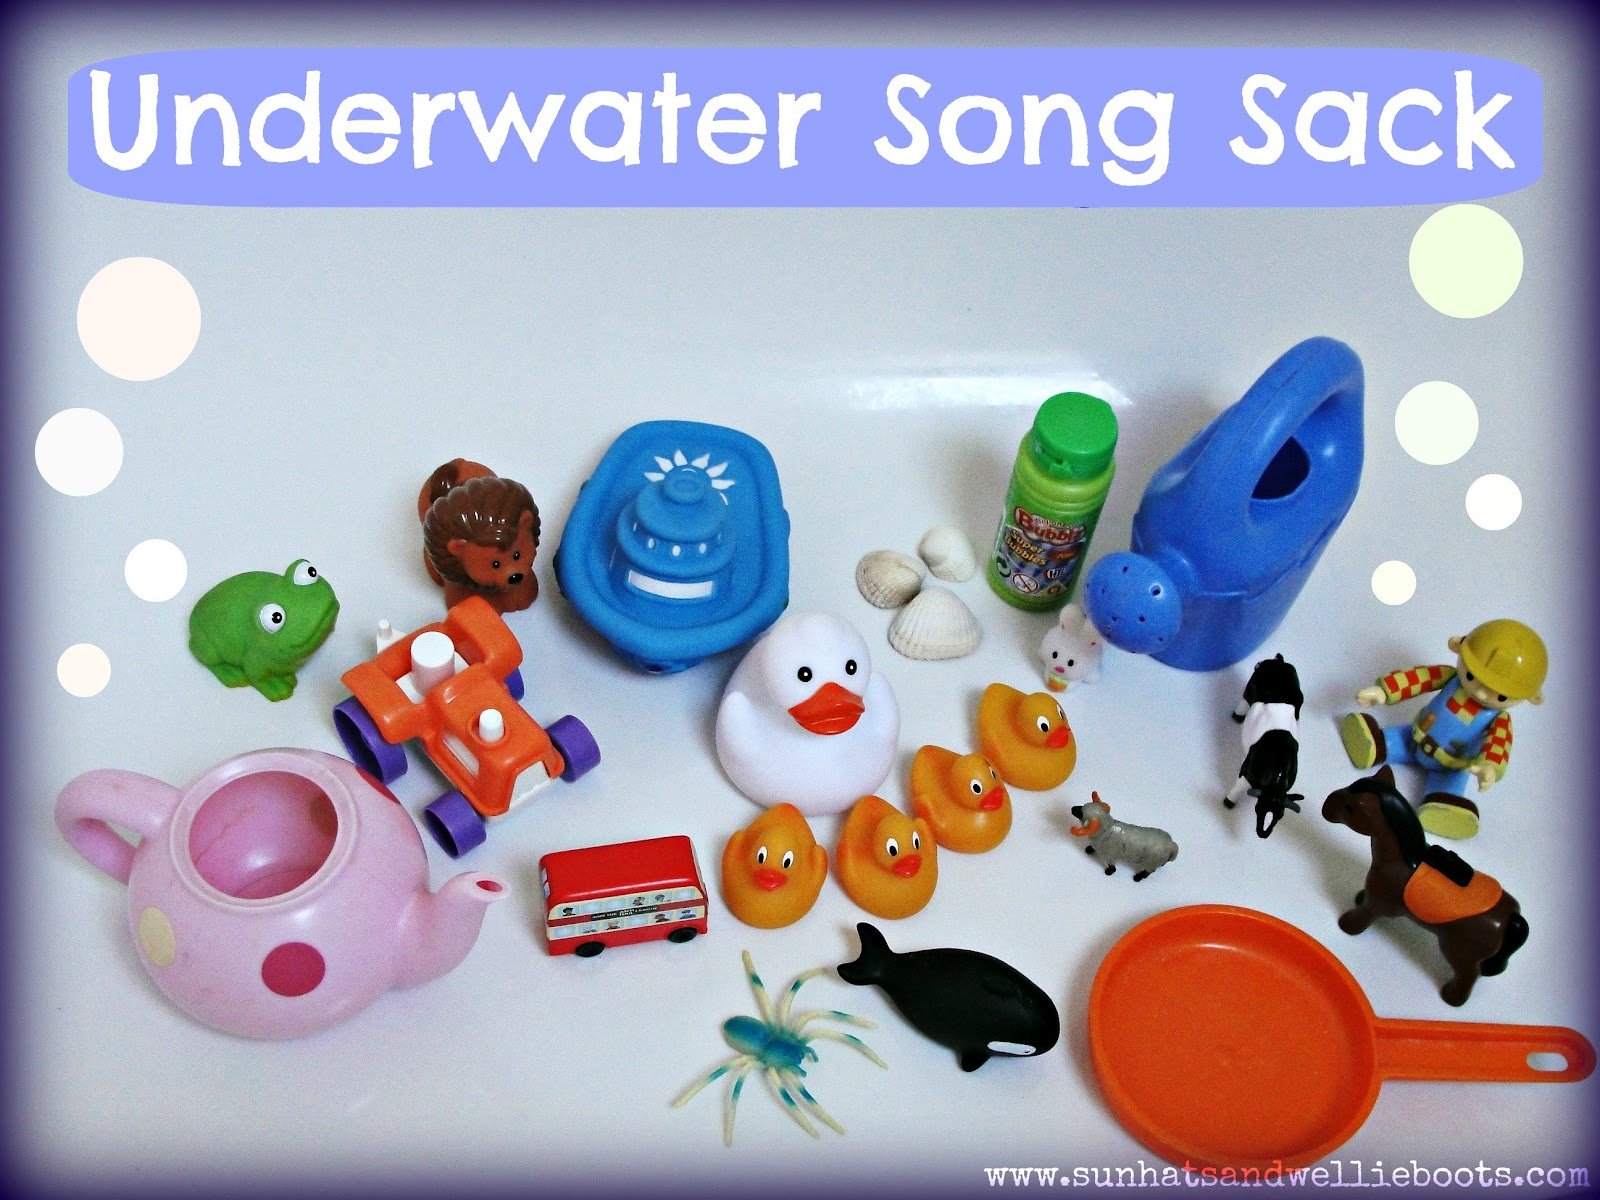 Sun Hats & Wellie Boots: Underwater Song Sack